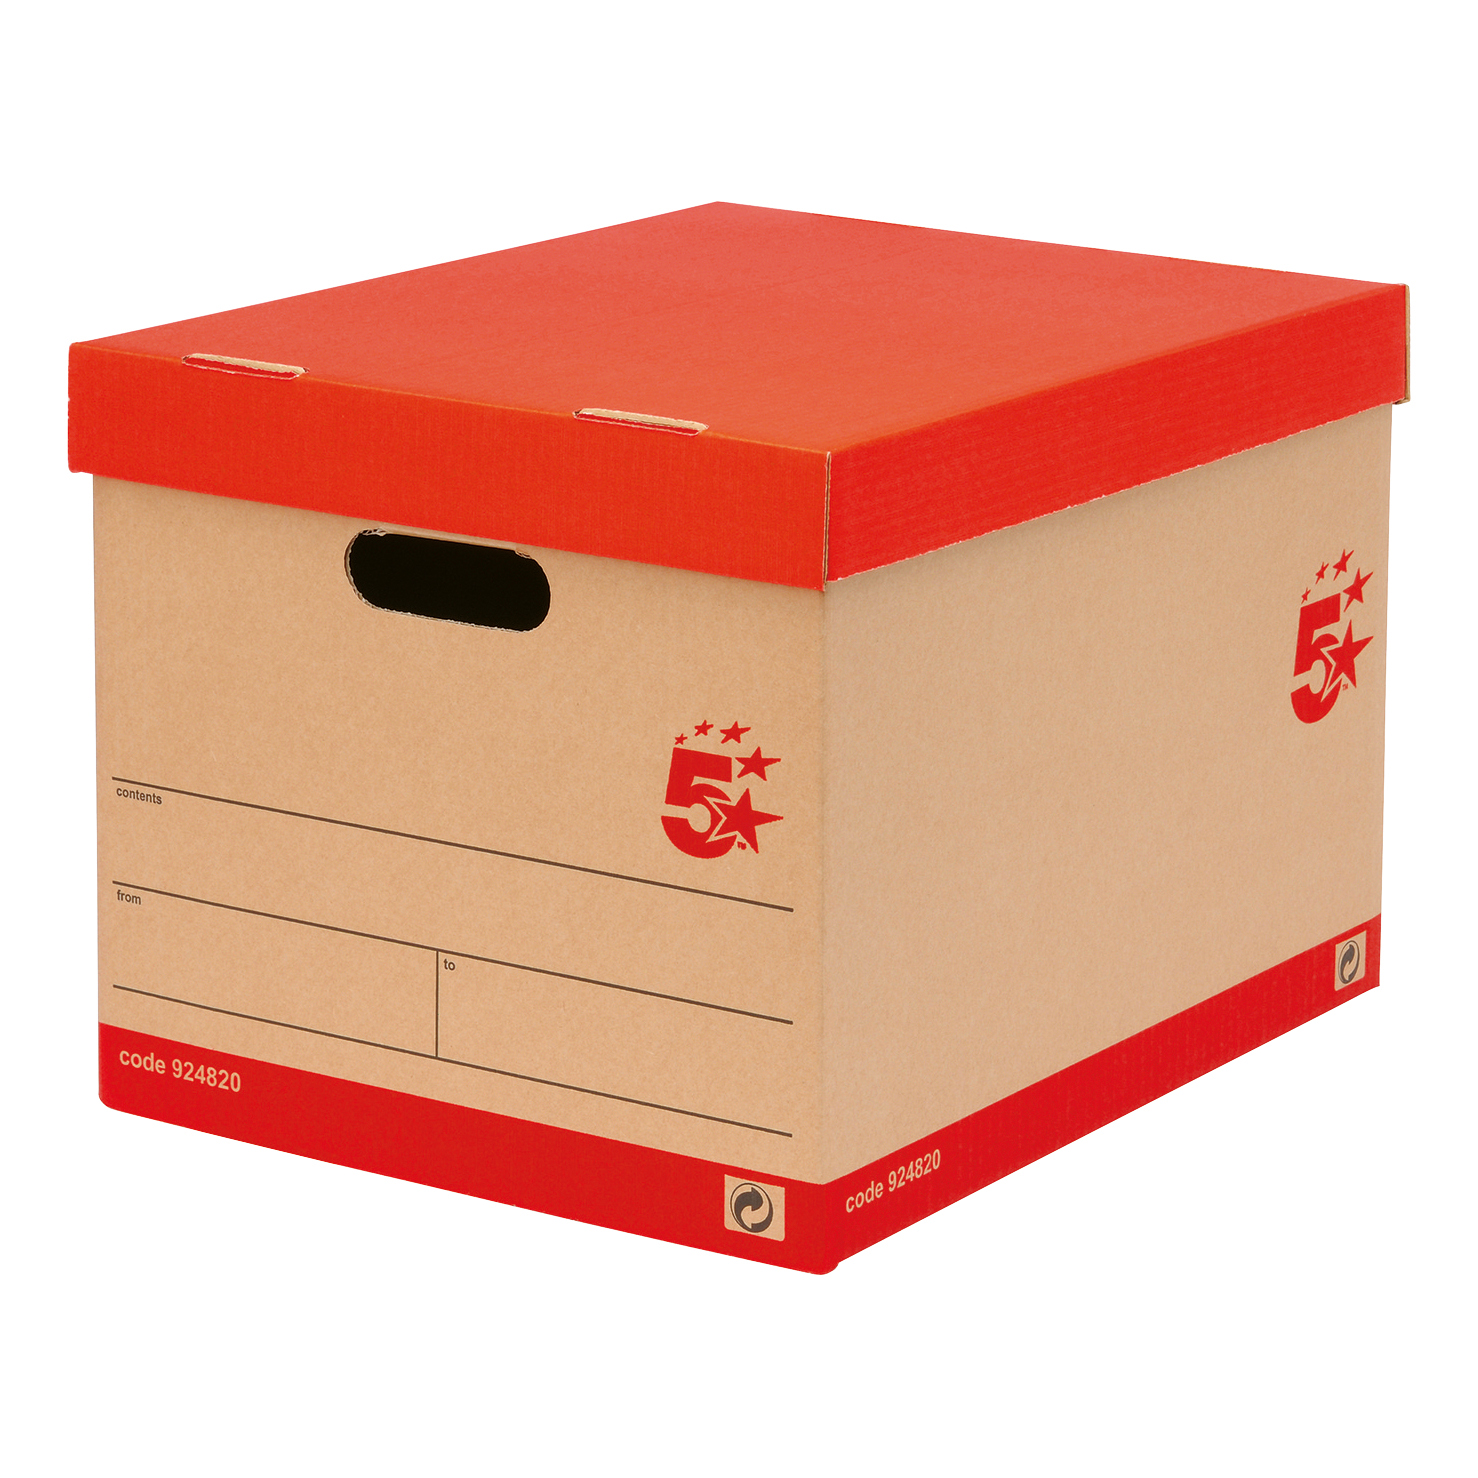 Storage Boxes 5 Star Office FSC Storage Box with Lid Self-assembly Kraft W321xD392xH291mm Red & Brown Pack 10